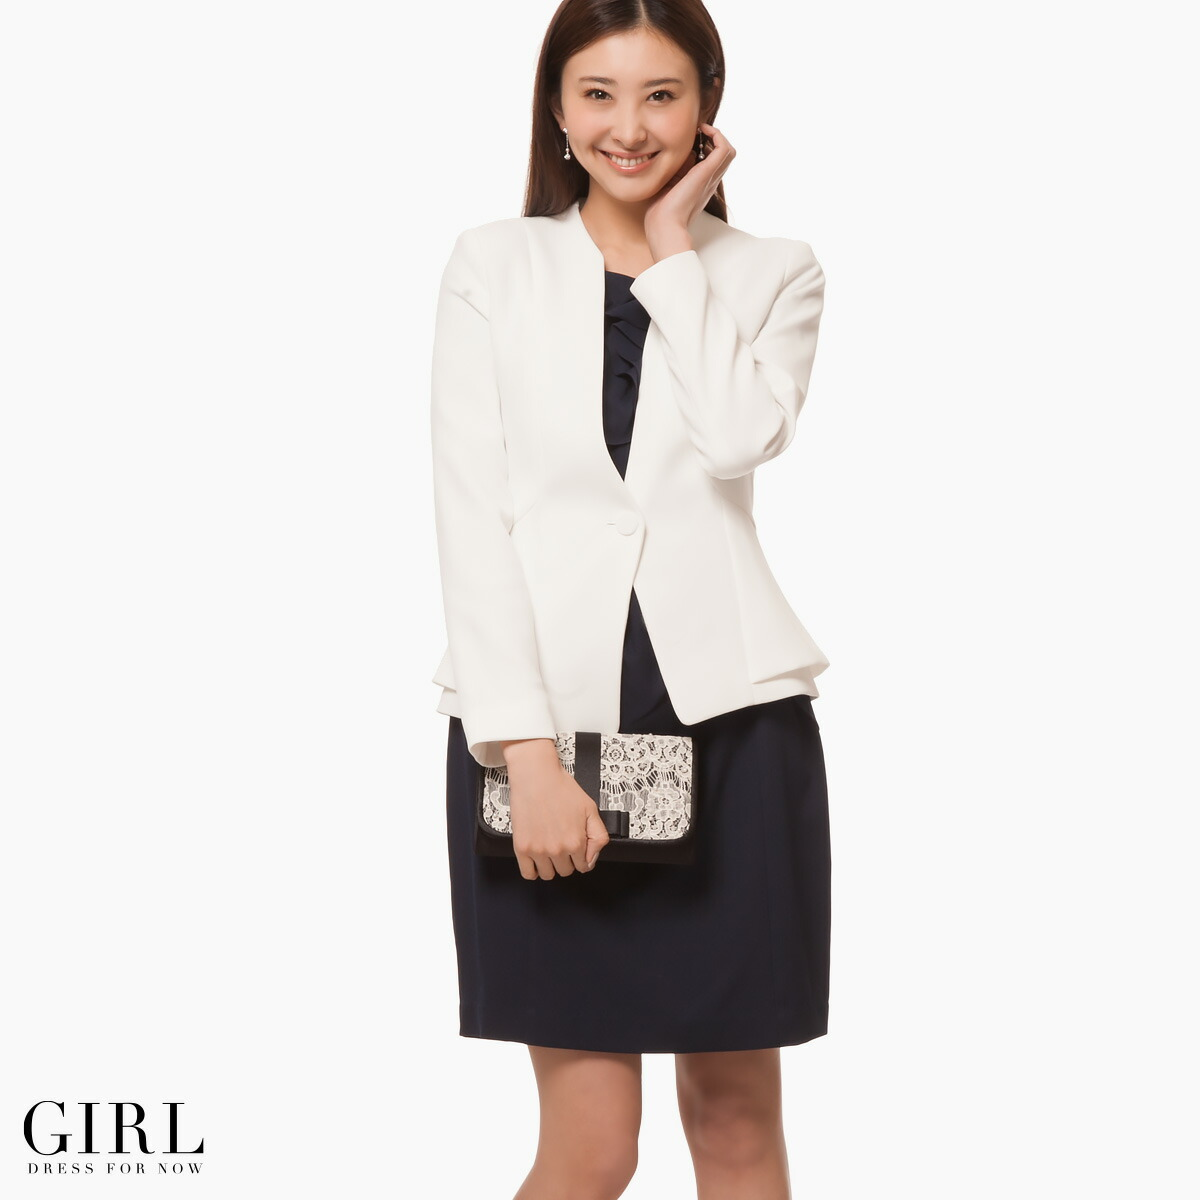 White dress coat - Jacket Breath 10 000 Yen With Sleeves Long Sleeved Wedding Parties Party Party Entrance Amp Graduation Ceremony